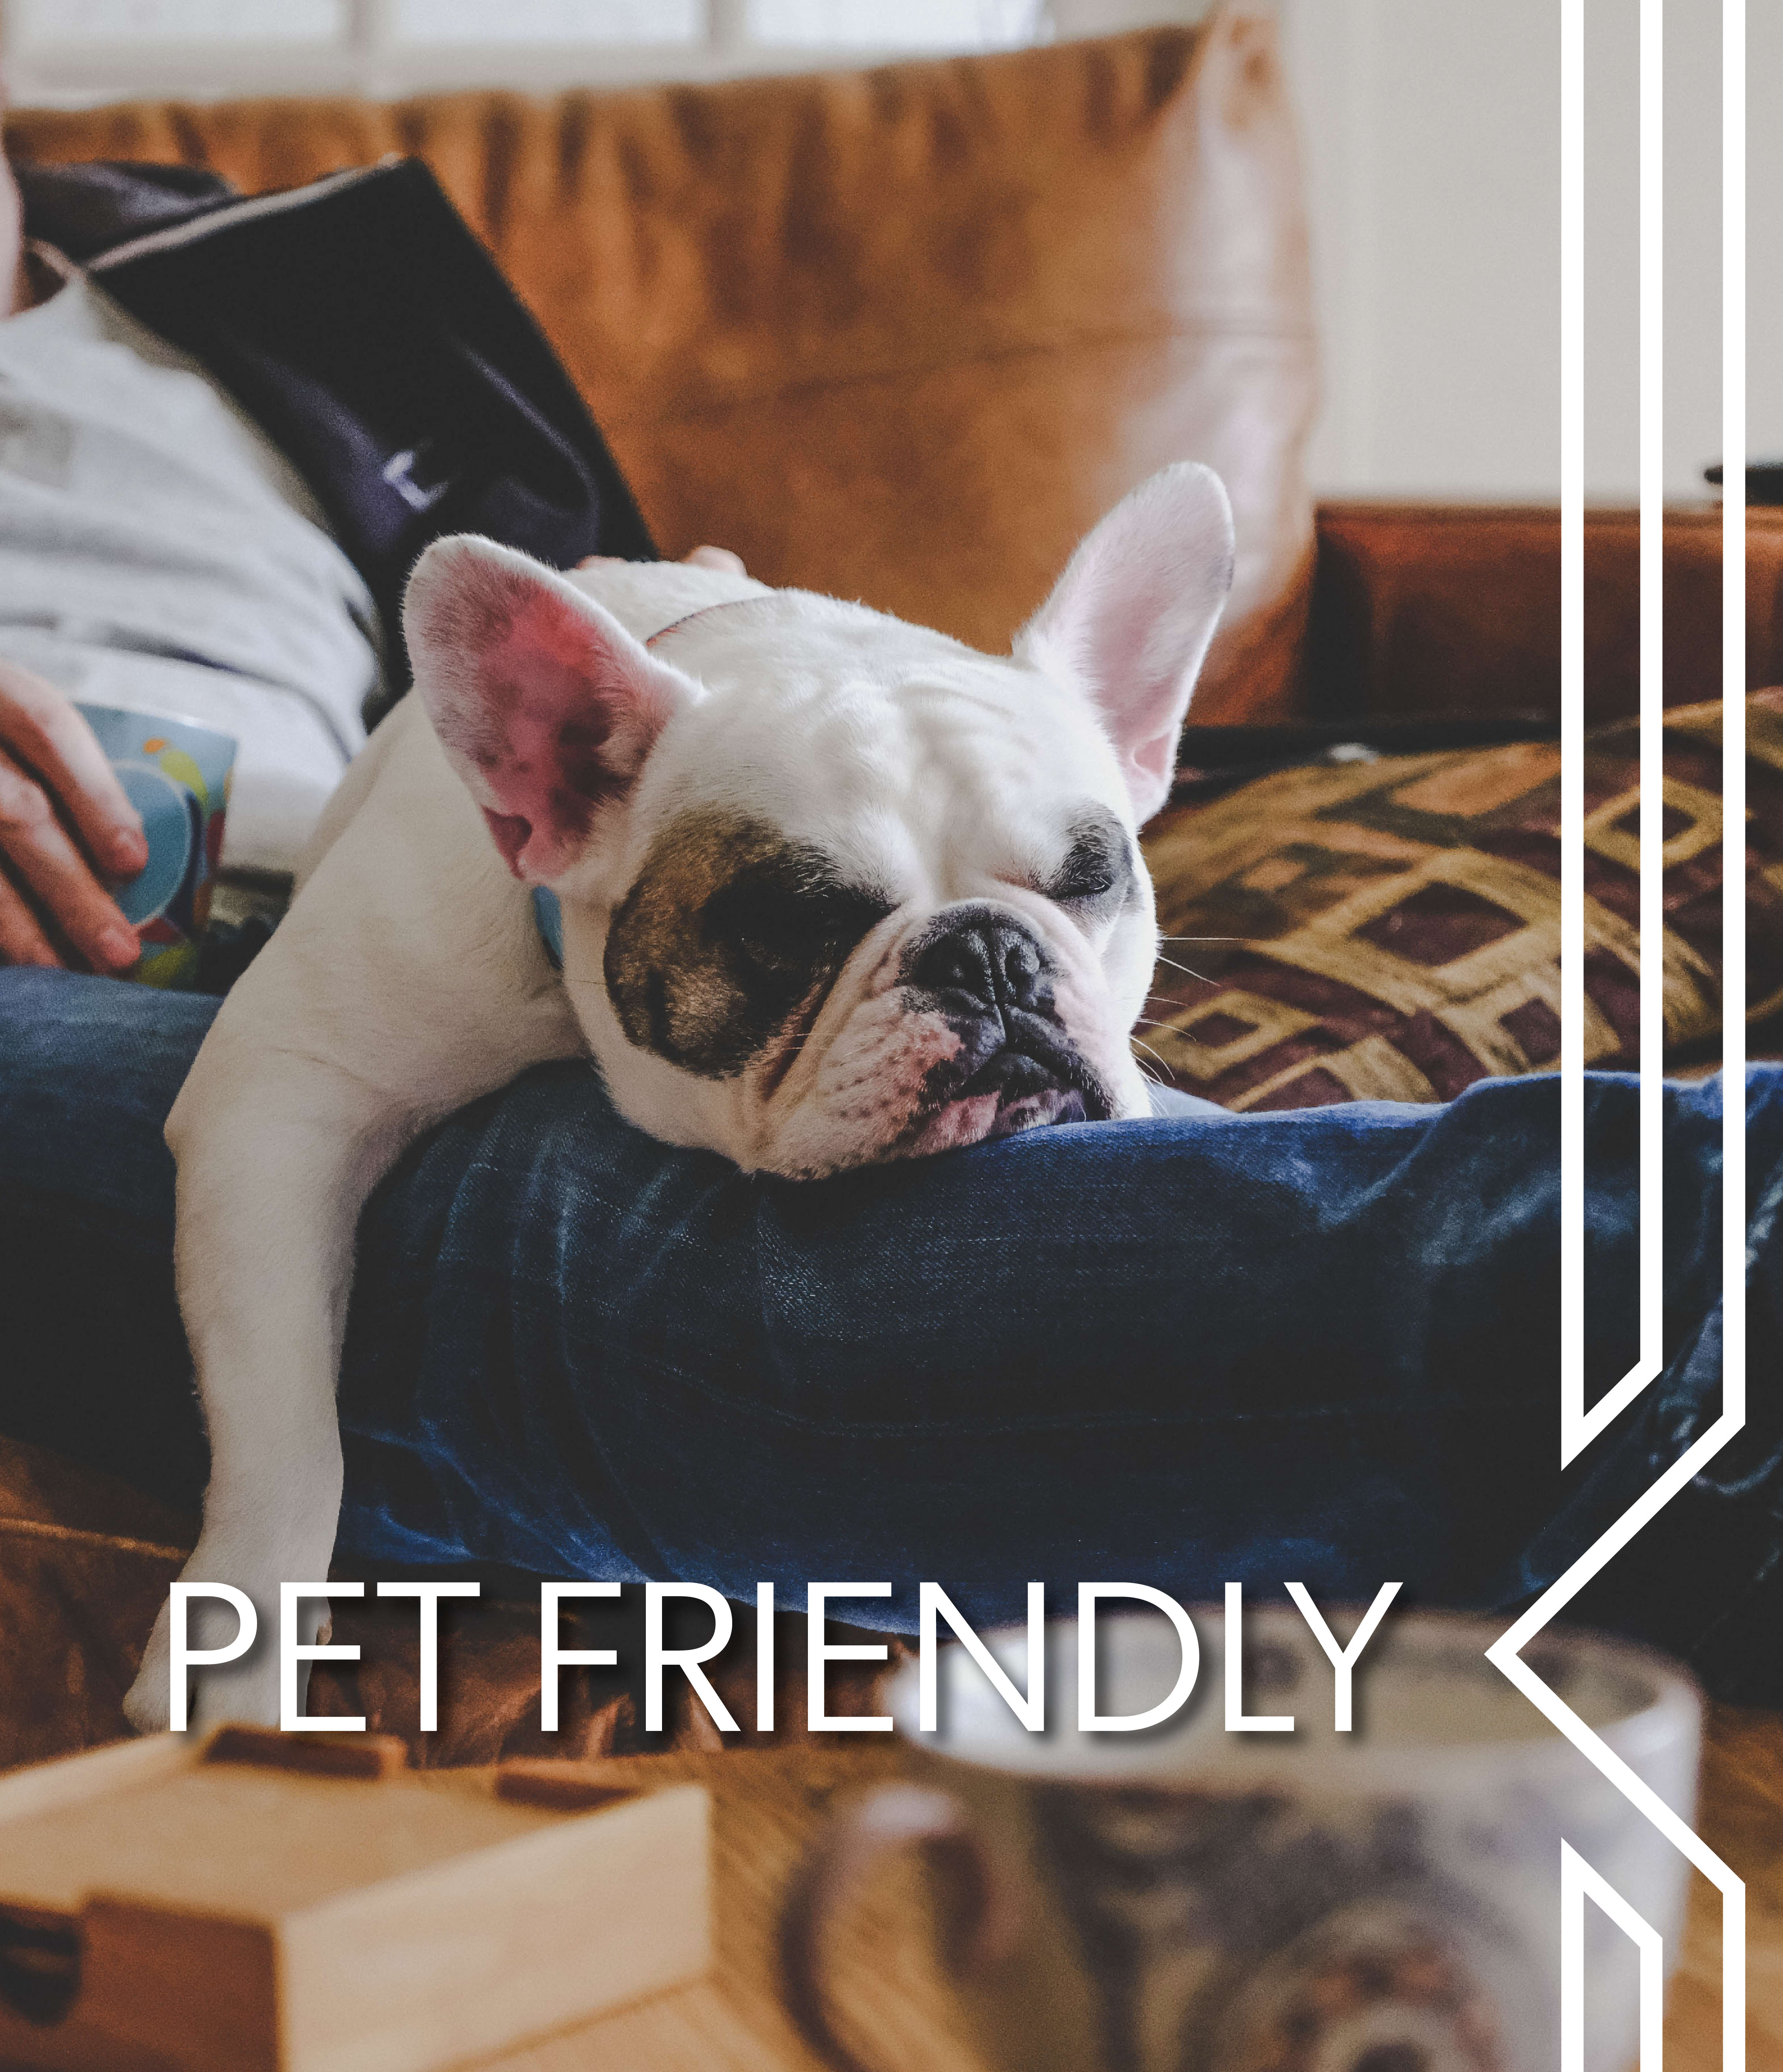 View our pet policy at The Station at River Crossing in Macon, Georgia